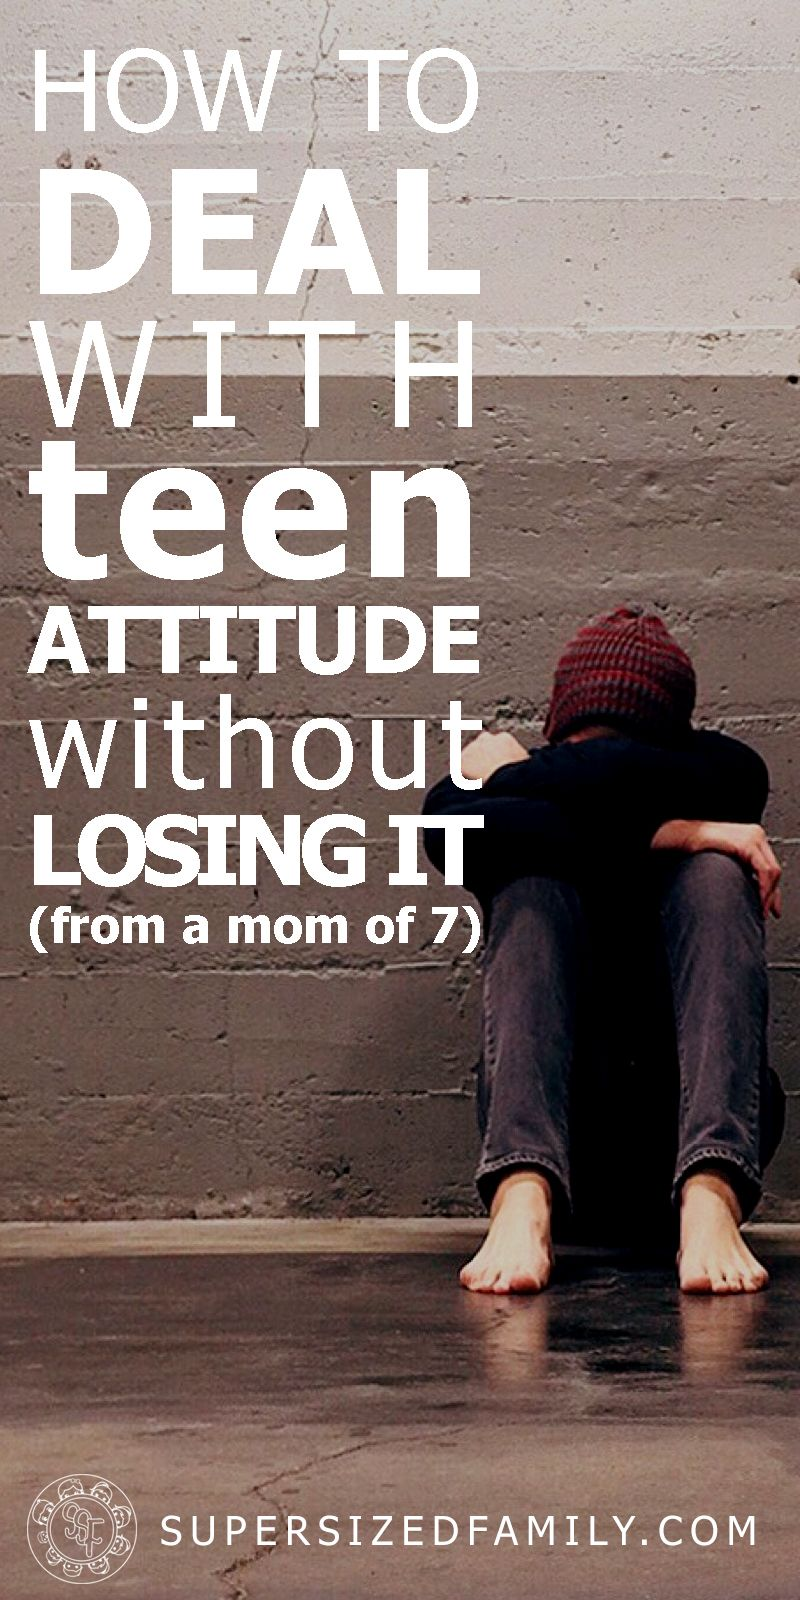 Photo of How to Deal with Disrespectful Teens or Teen Attitude – Supersized Family